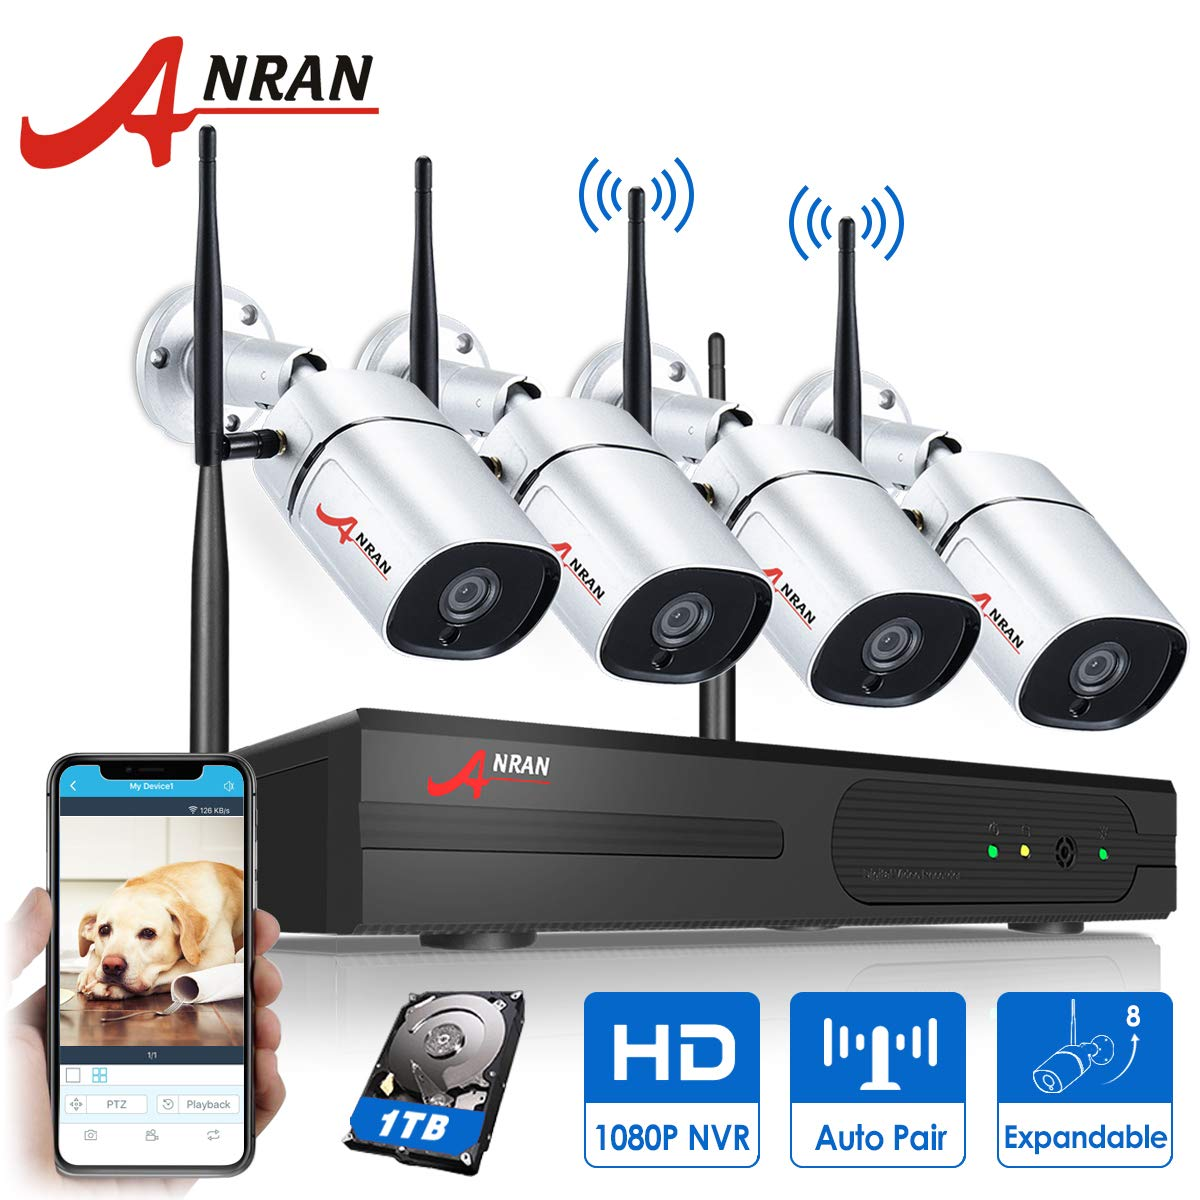 [8CH Expandable] ANRAN 1080P 8CH Wireless Security Camera System 4Pcs 2MP Wireless Security Surveillance Indoor/Outdoor IP Cameras P2P CCTV Camera System Plug&Play Easy Remote View 1TB HDD Pre-Install by ANRAN